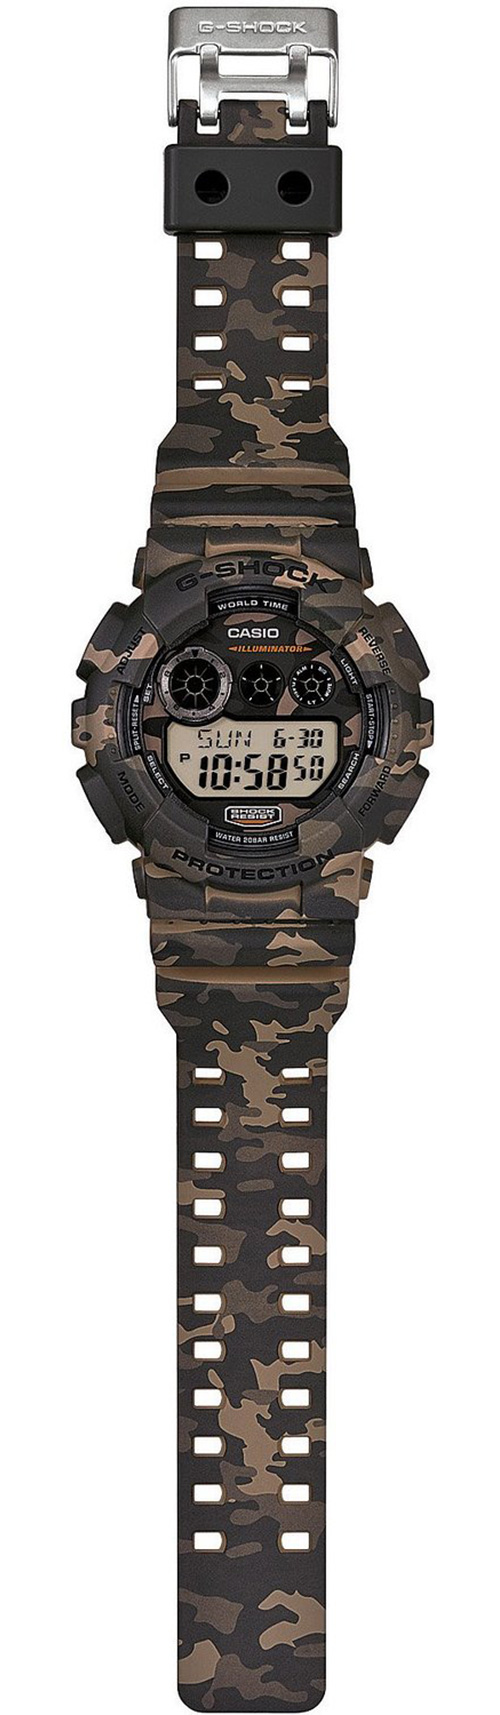 gs120cm-5_g-shock_full woods camo watch